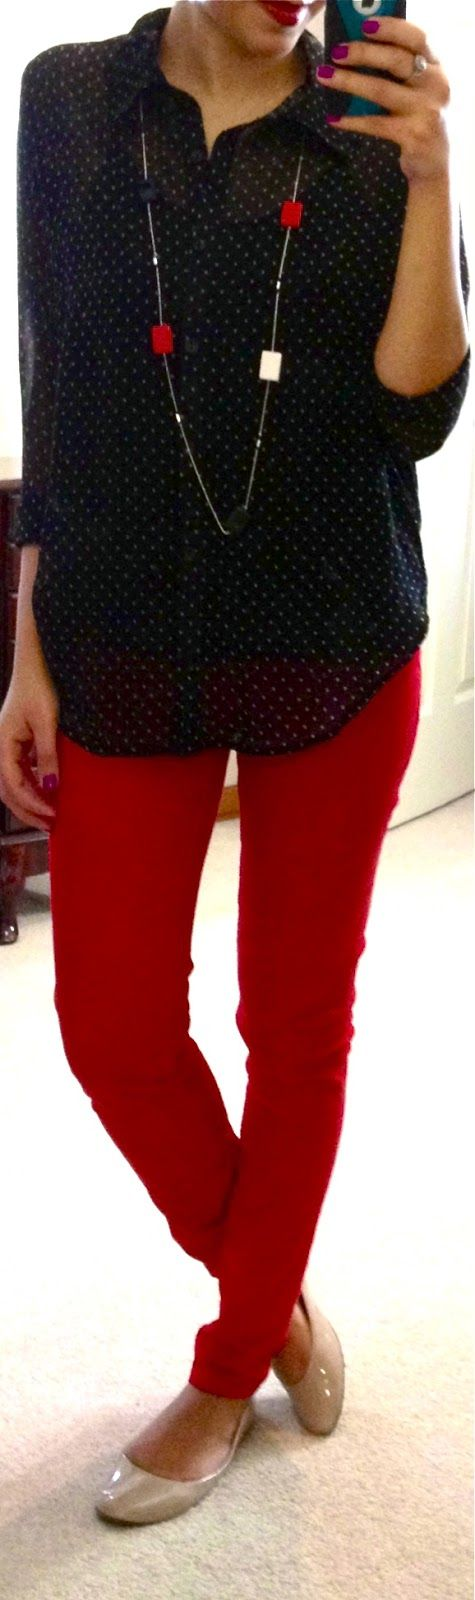 red skinnies, dot shirt, long necklace & nude flats. Also look good with dot skinnnies & red shirt